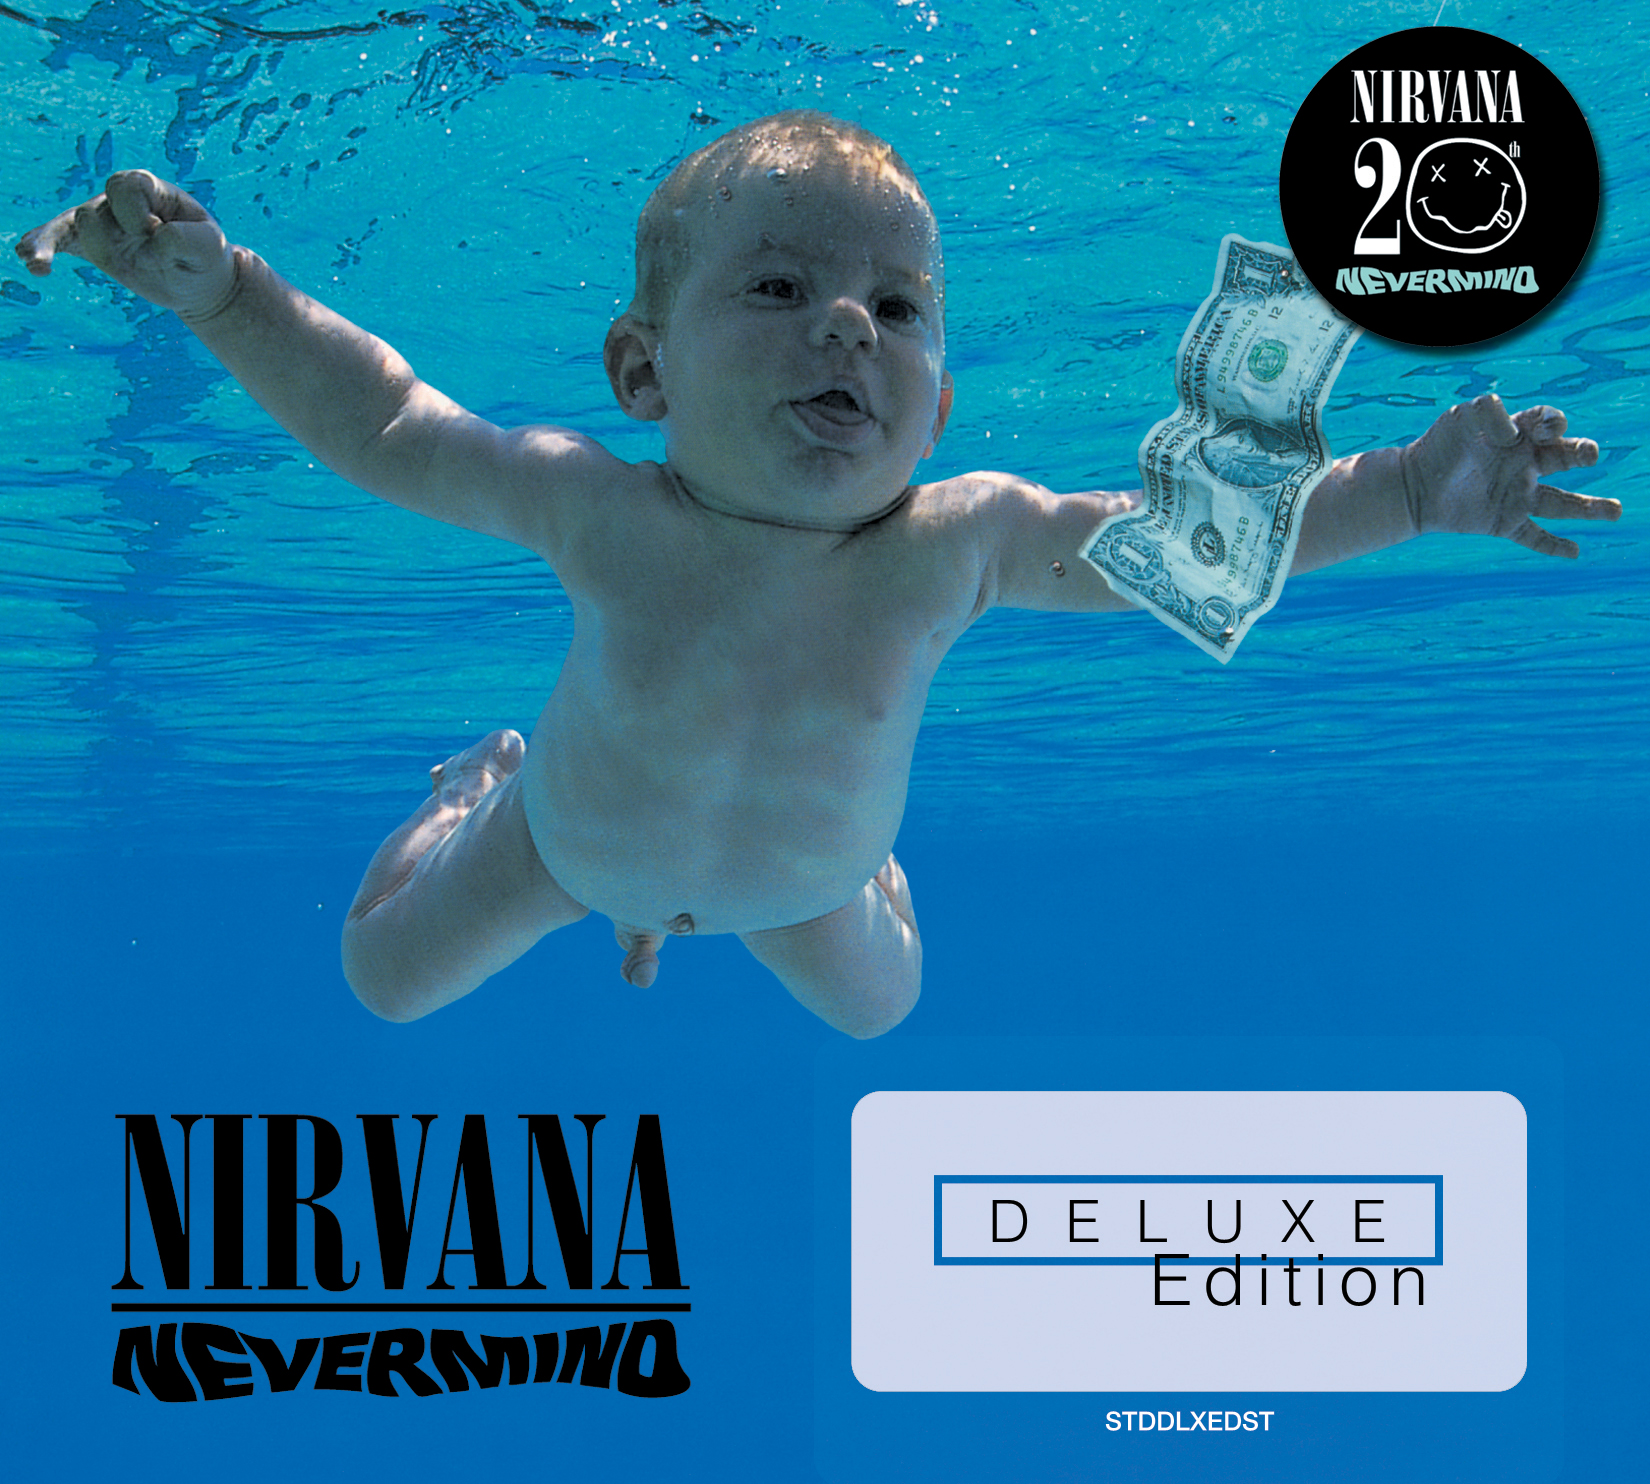 Nirvana-Nevermind-Deluxe-Edition